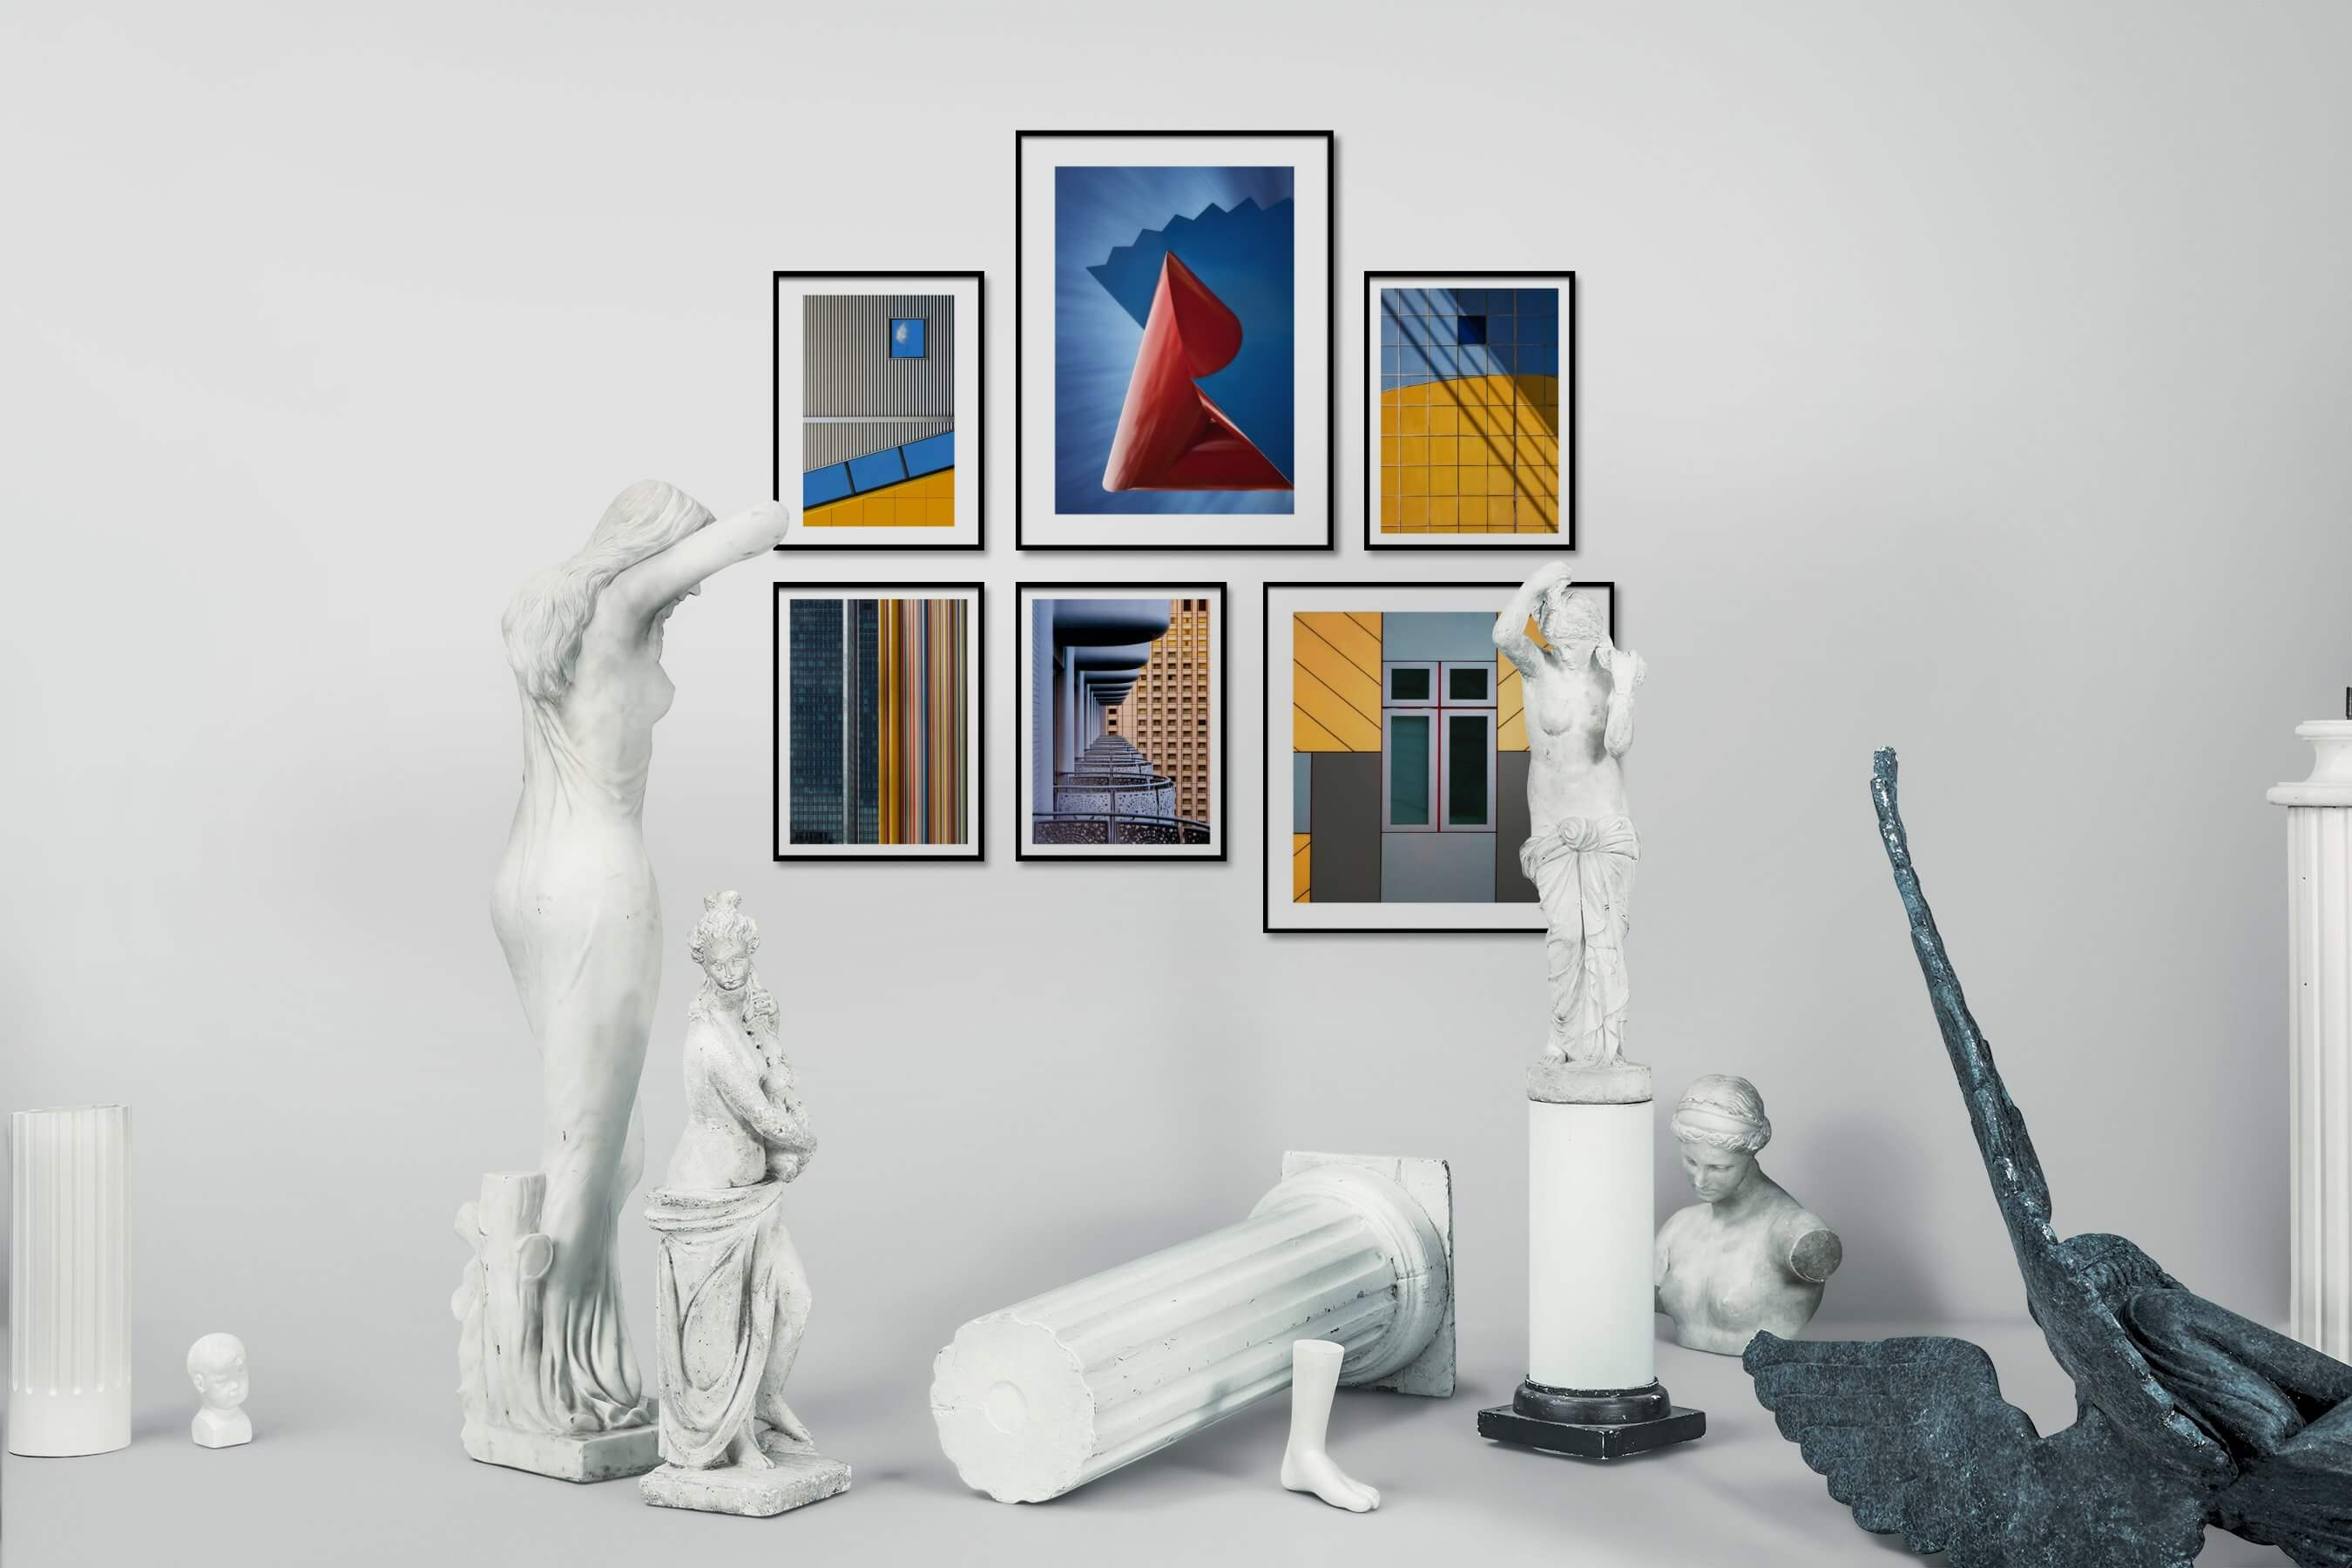 Gallery wall idea with six framed pictures arranged on a wall depicting For the Moderate, For the Maximalist, and City Life